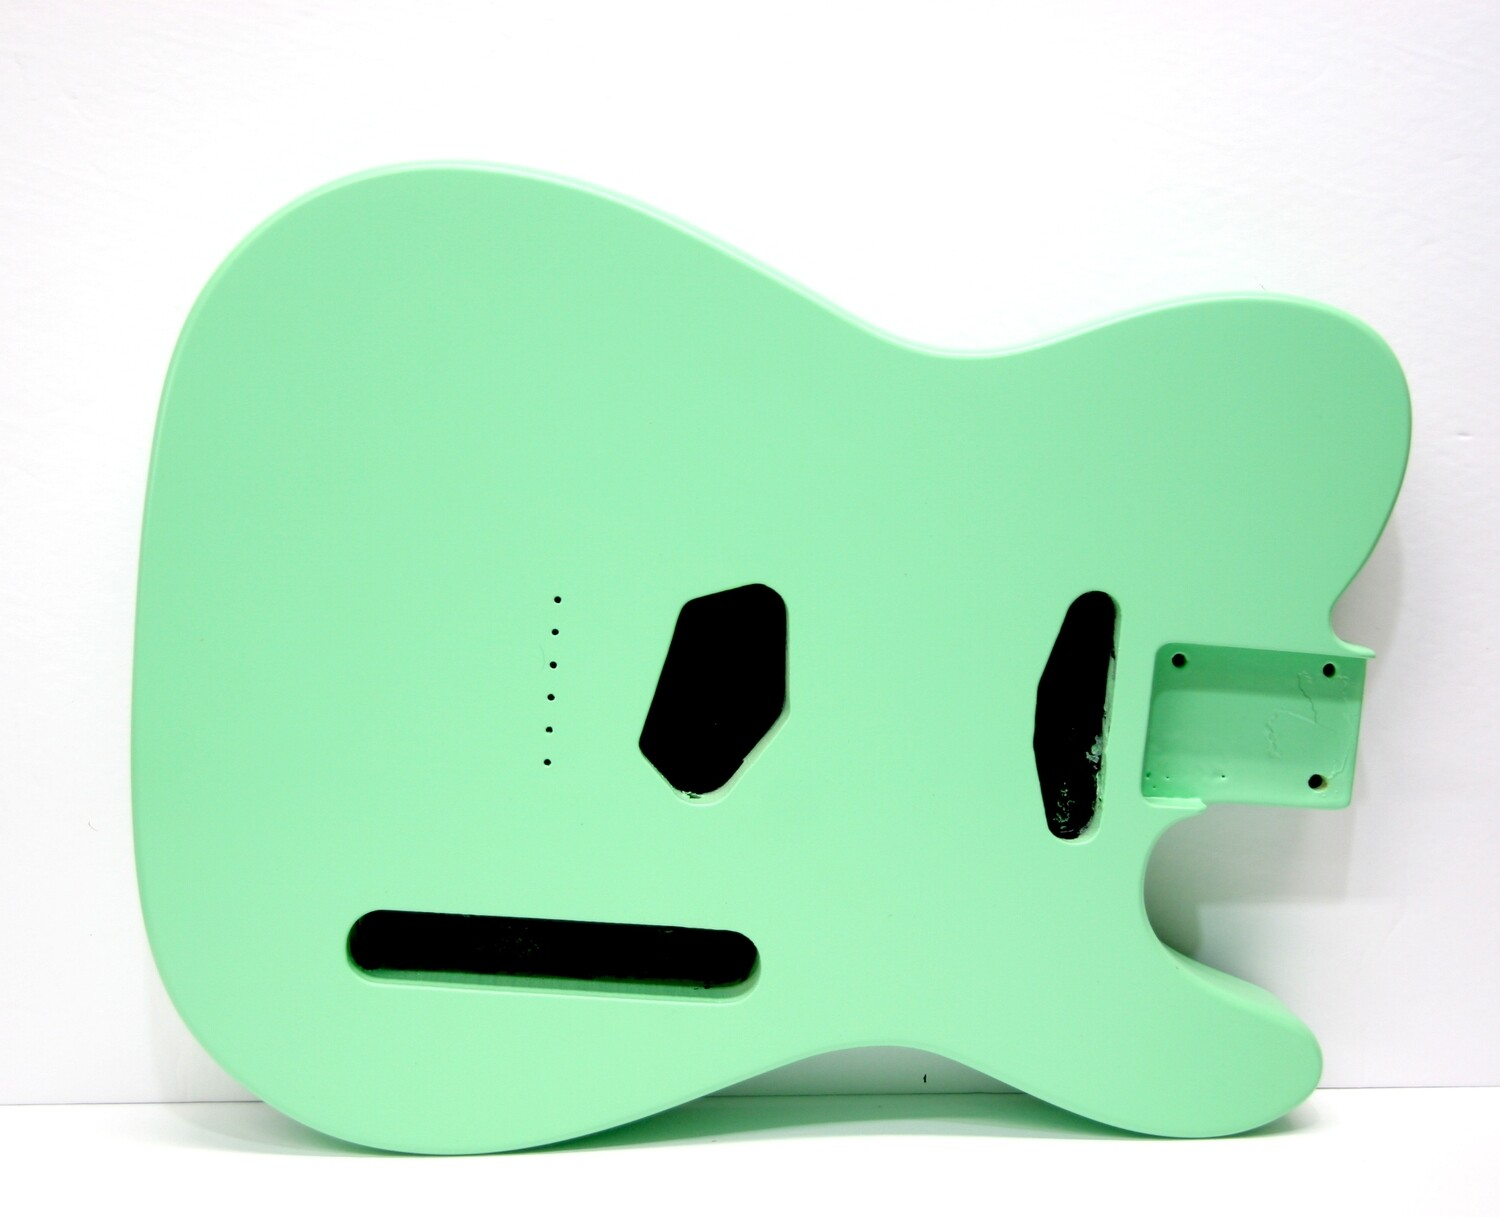 Brio Tele Body Satin Nitro 2pc Alder Surf Green